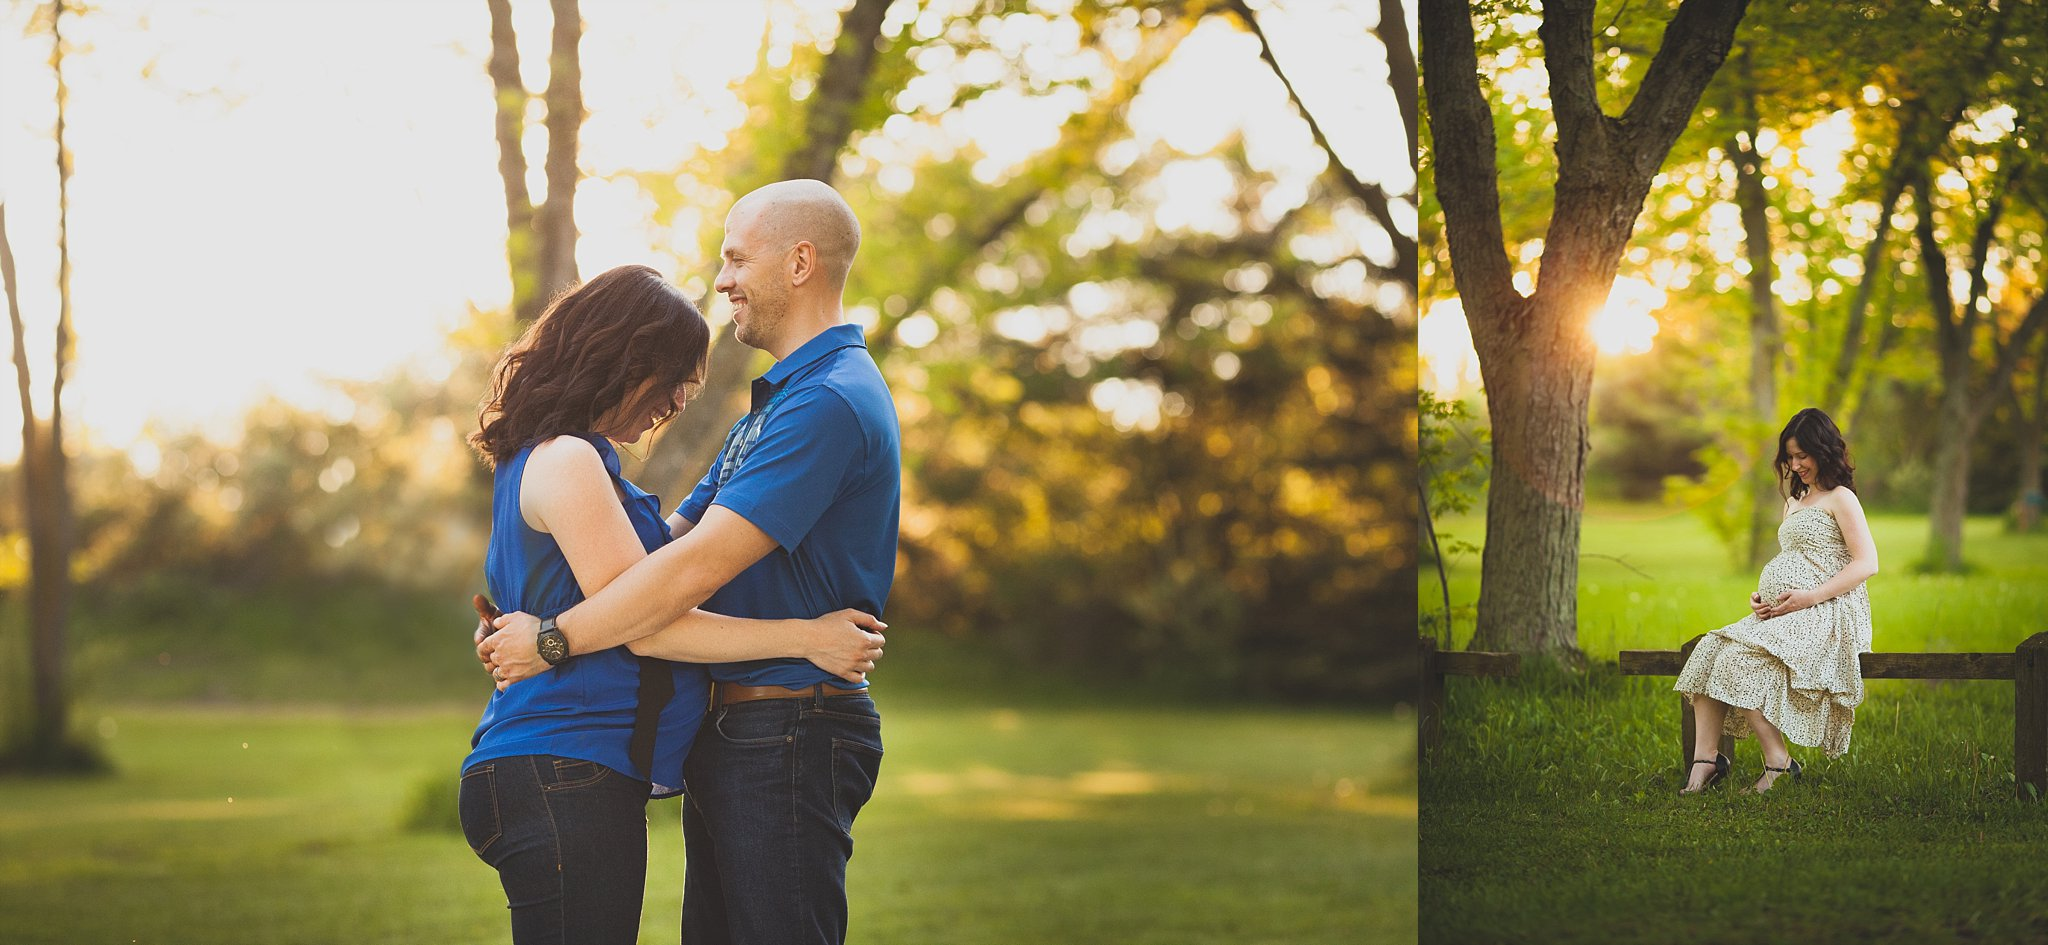 Couples maternity photograph.